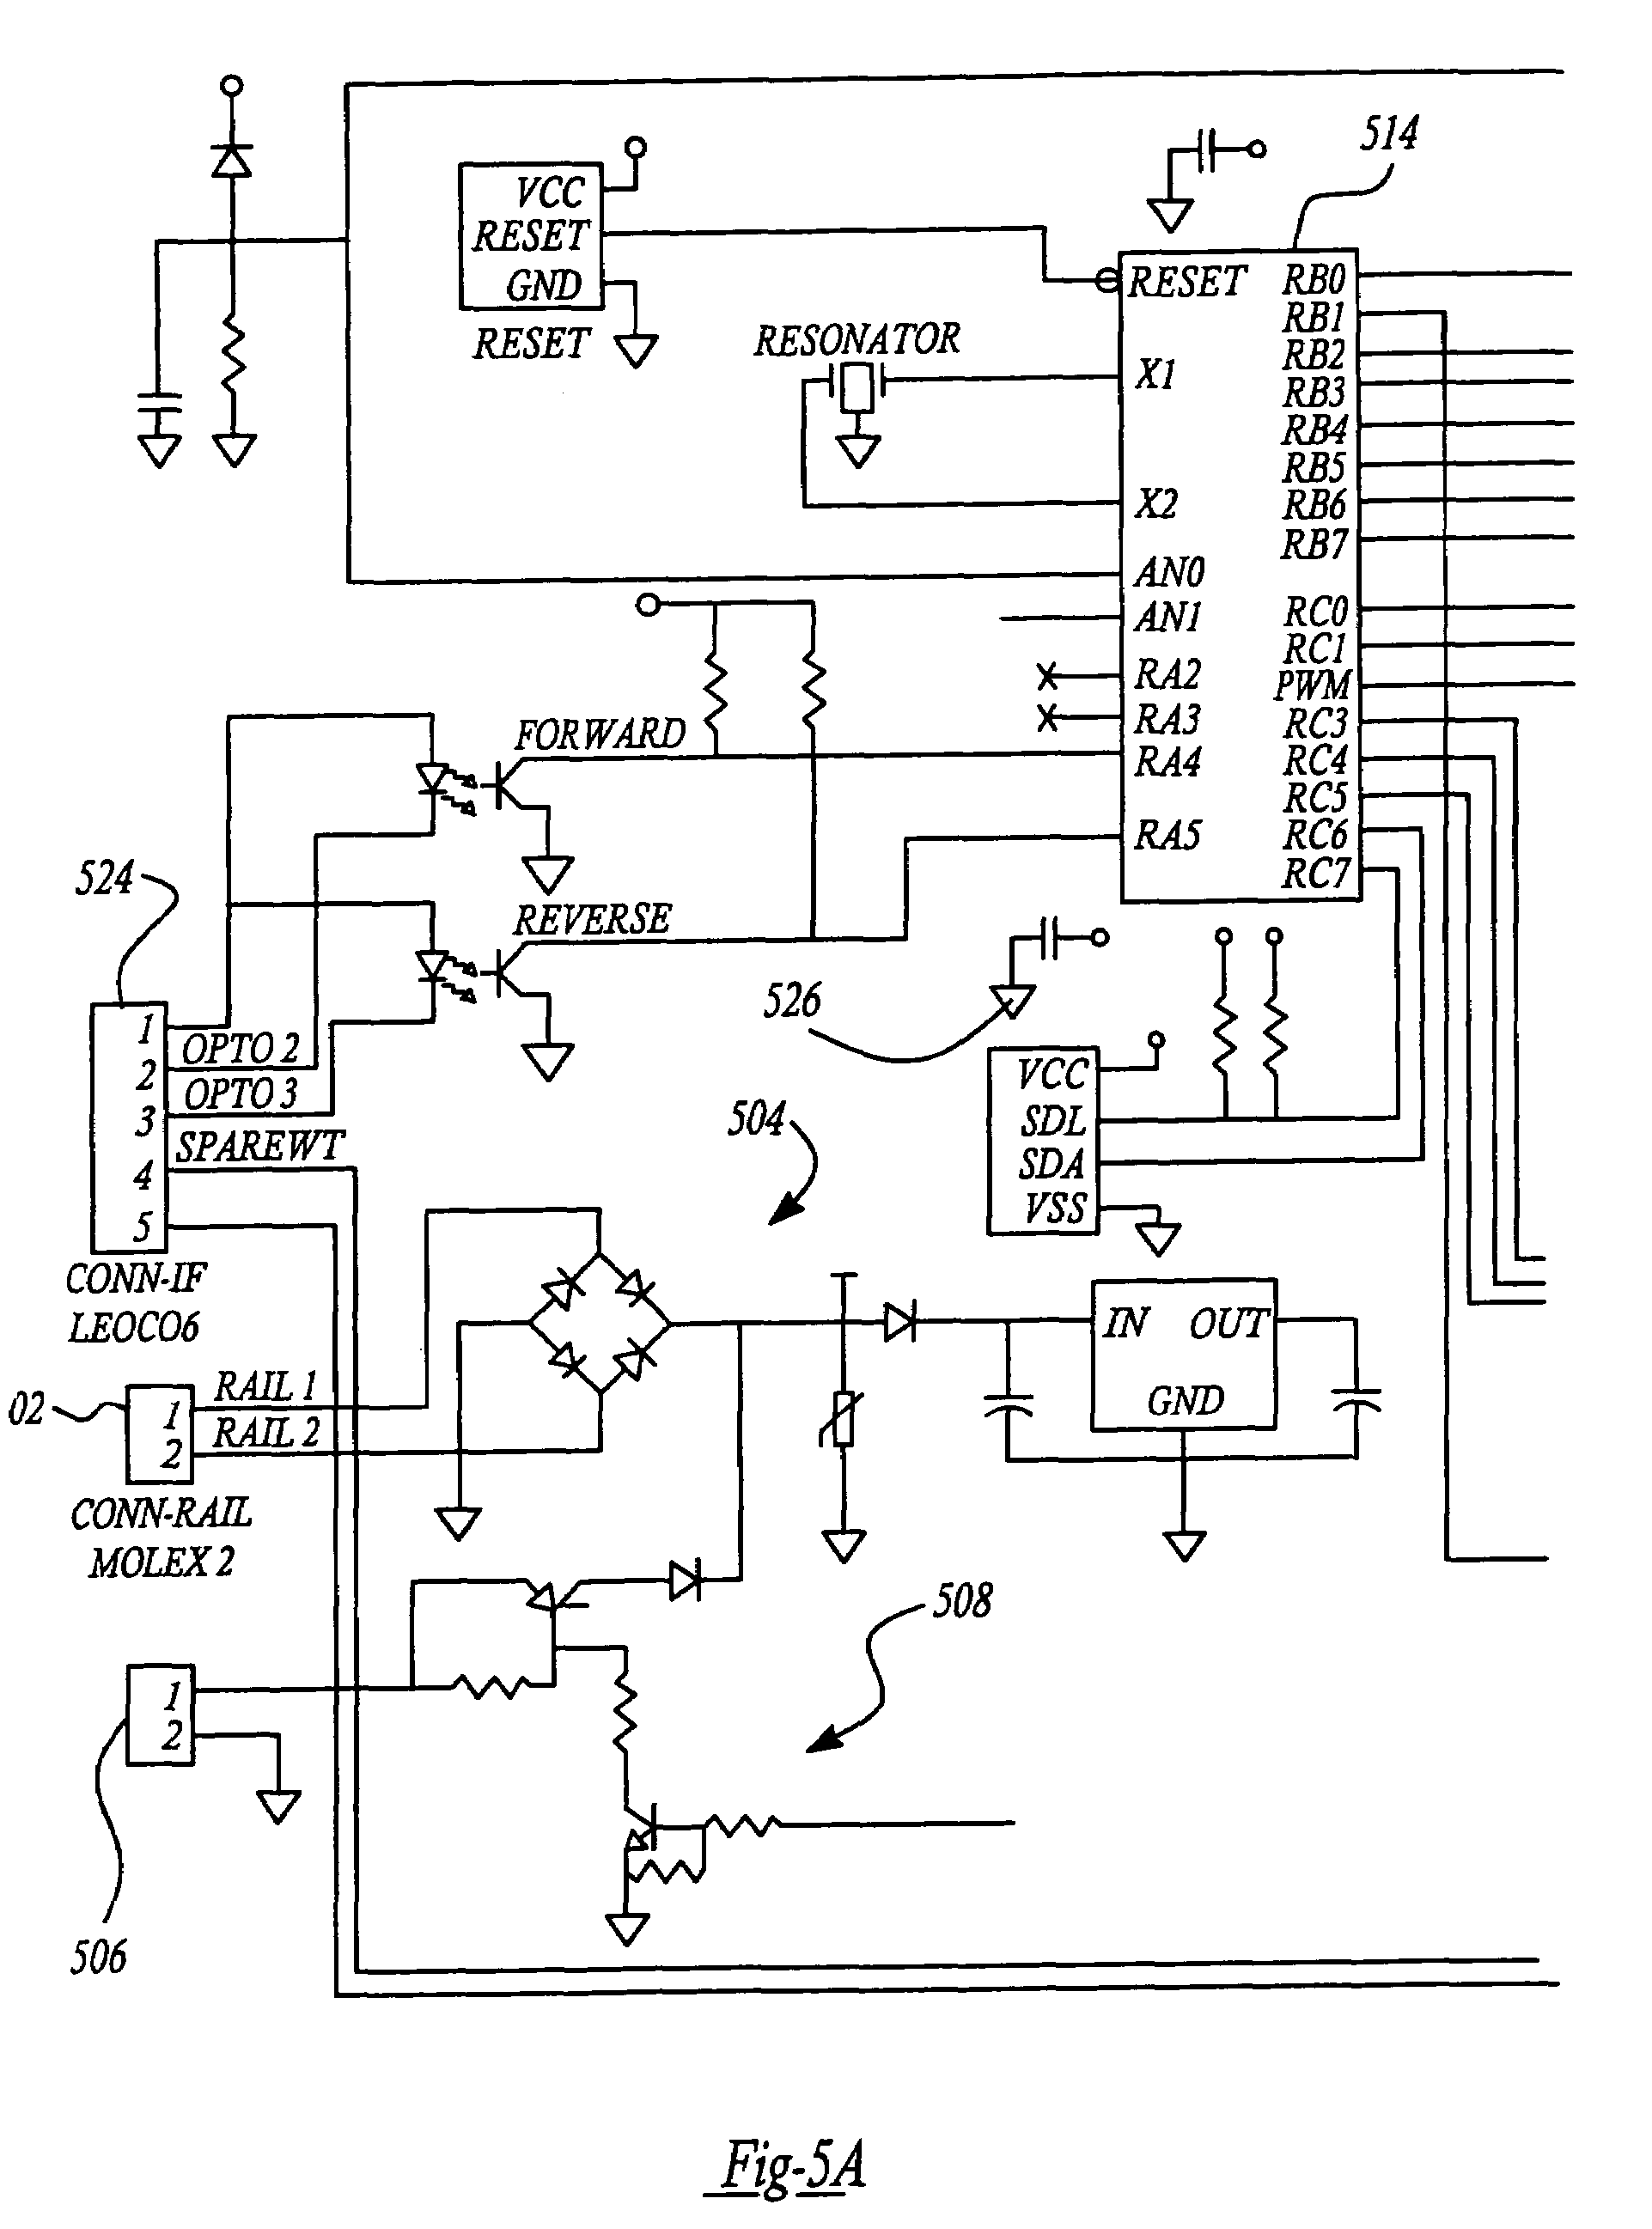 US07298103 20071120 D00003 patent us7298103 control and motor arrangement for use in model 1985 honda spree wiring diagram at gsmx.co